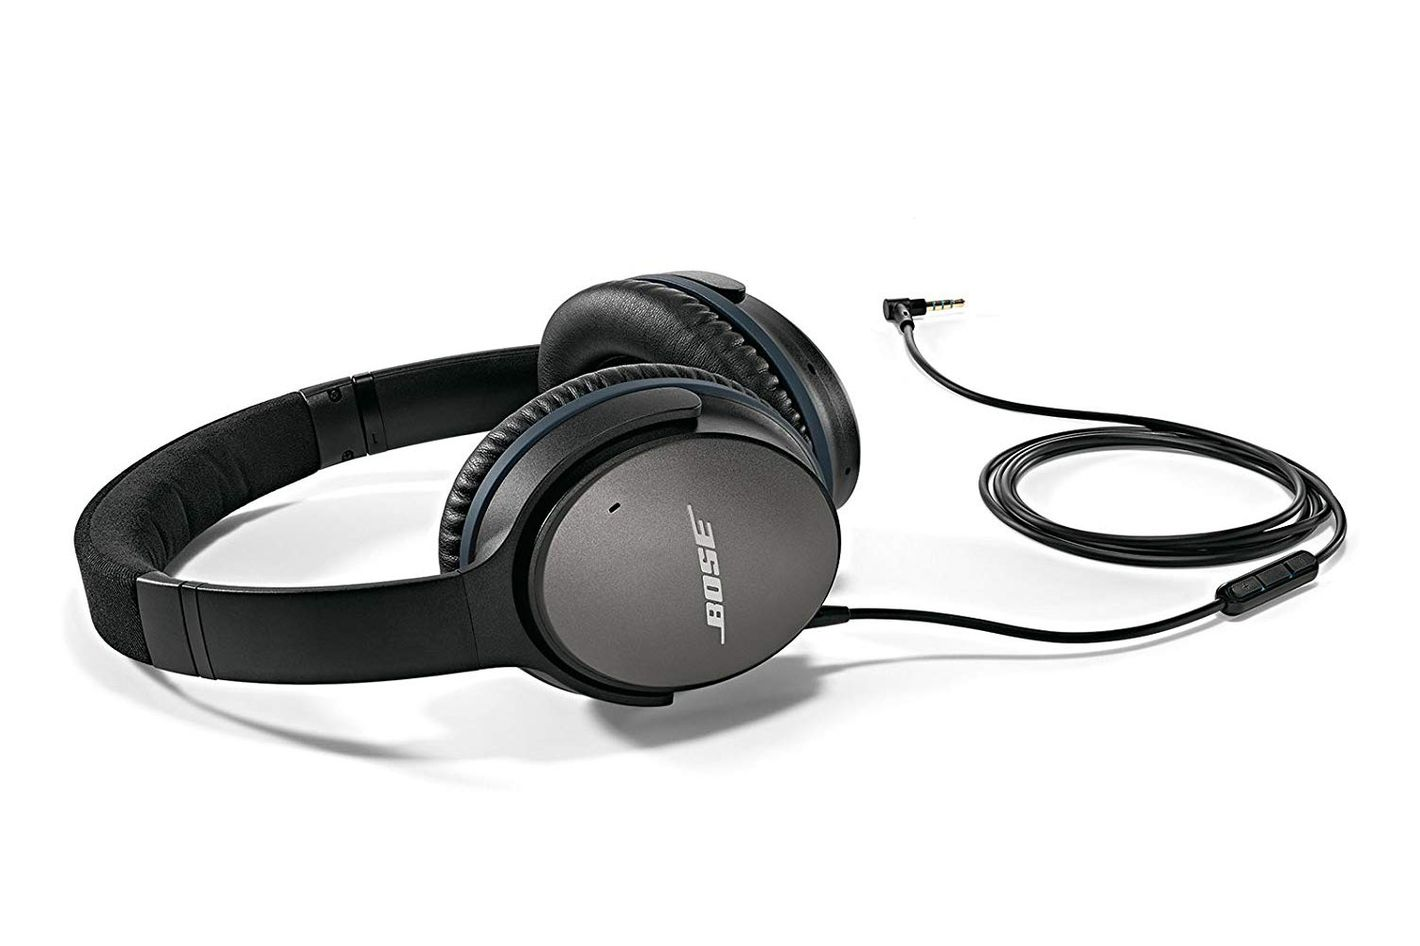 Bose QuietComfort 25 Acoustic Noise Canceling Headphones for Android Devices, Black